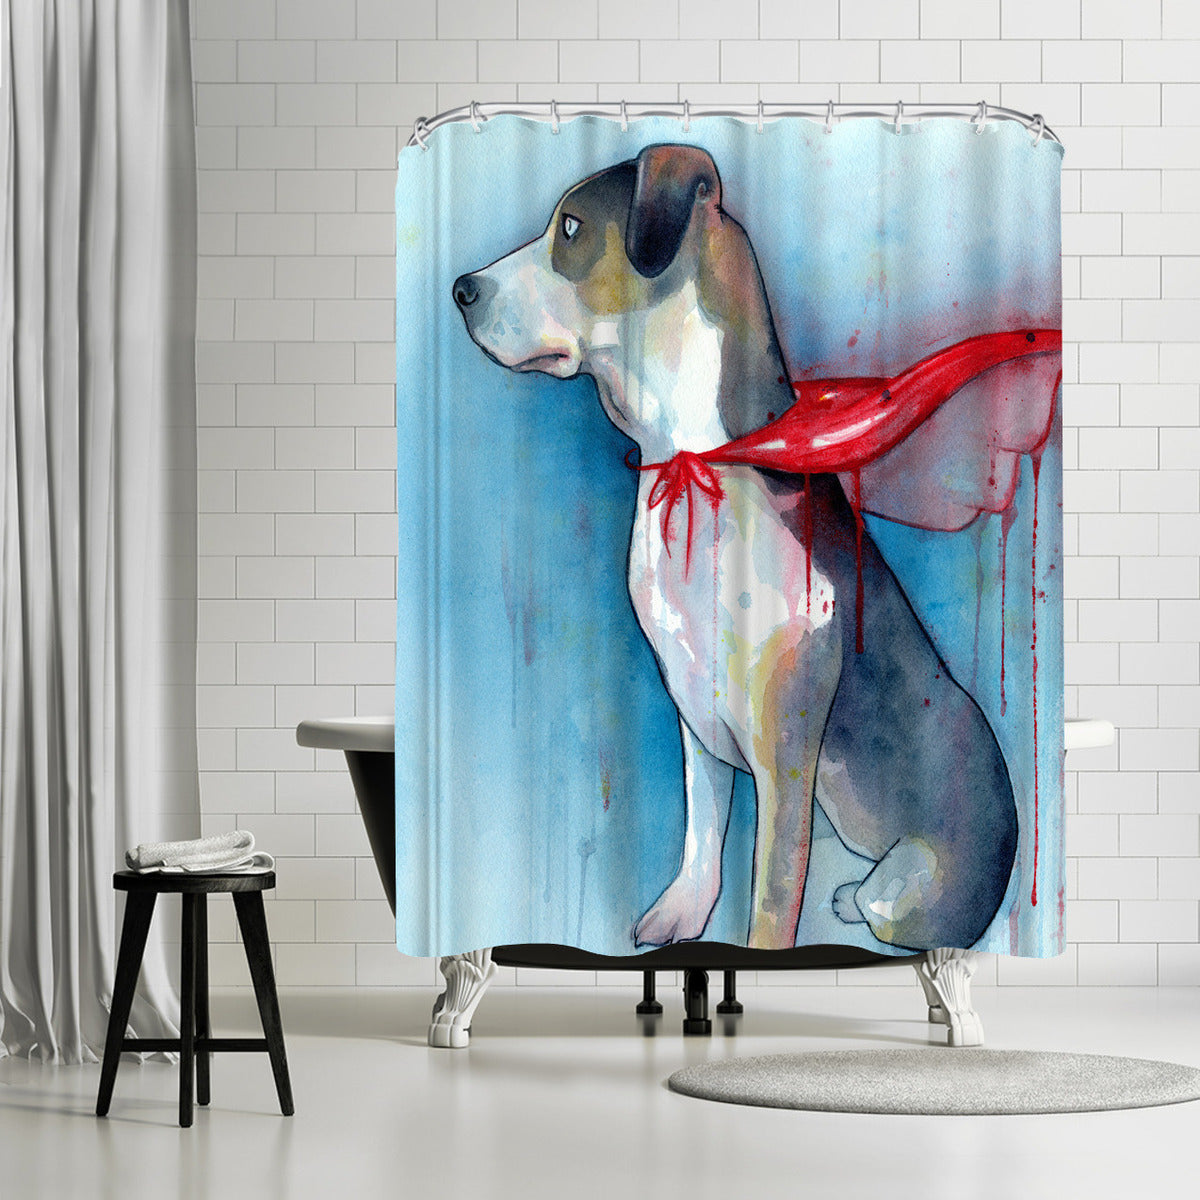 Super Dog by Sam Nagel Shower Curtain - Shower Curtain - Americanflat